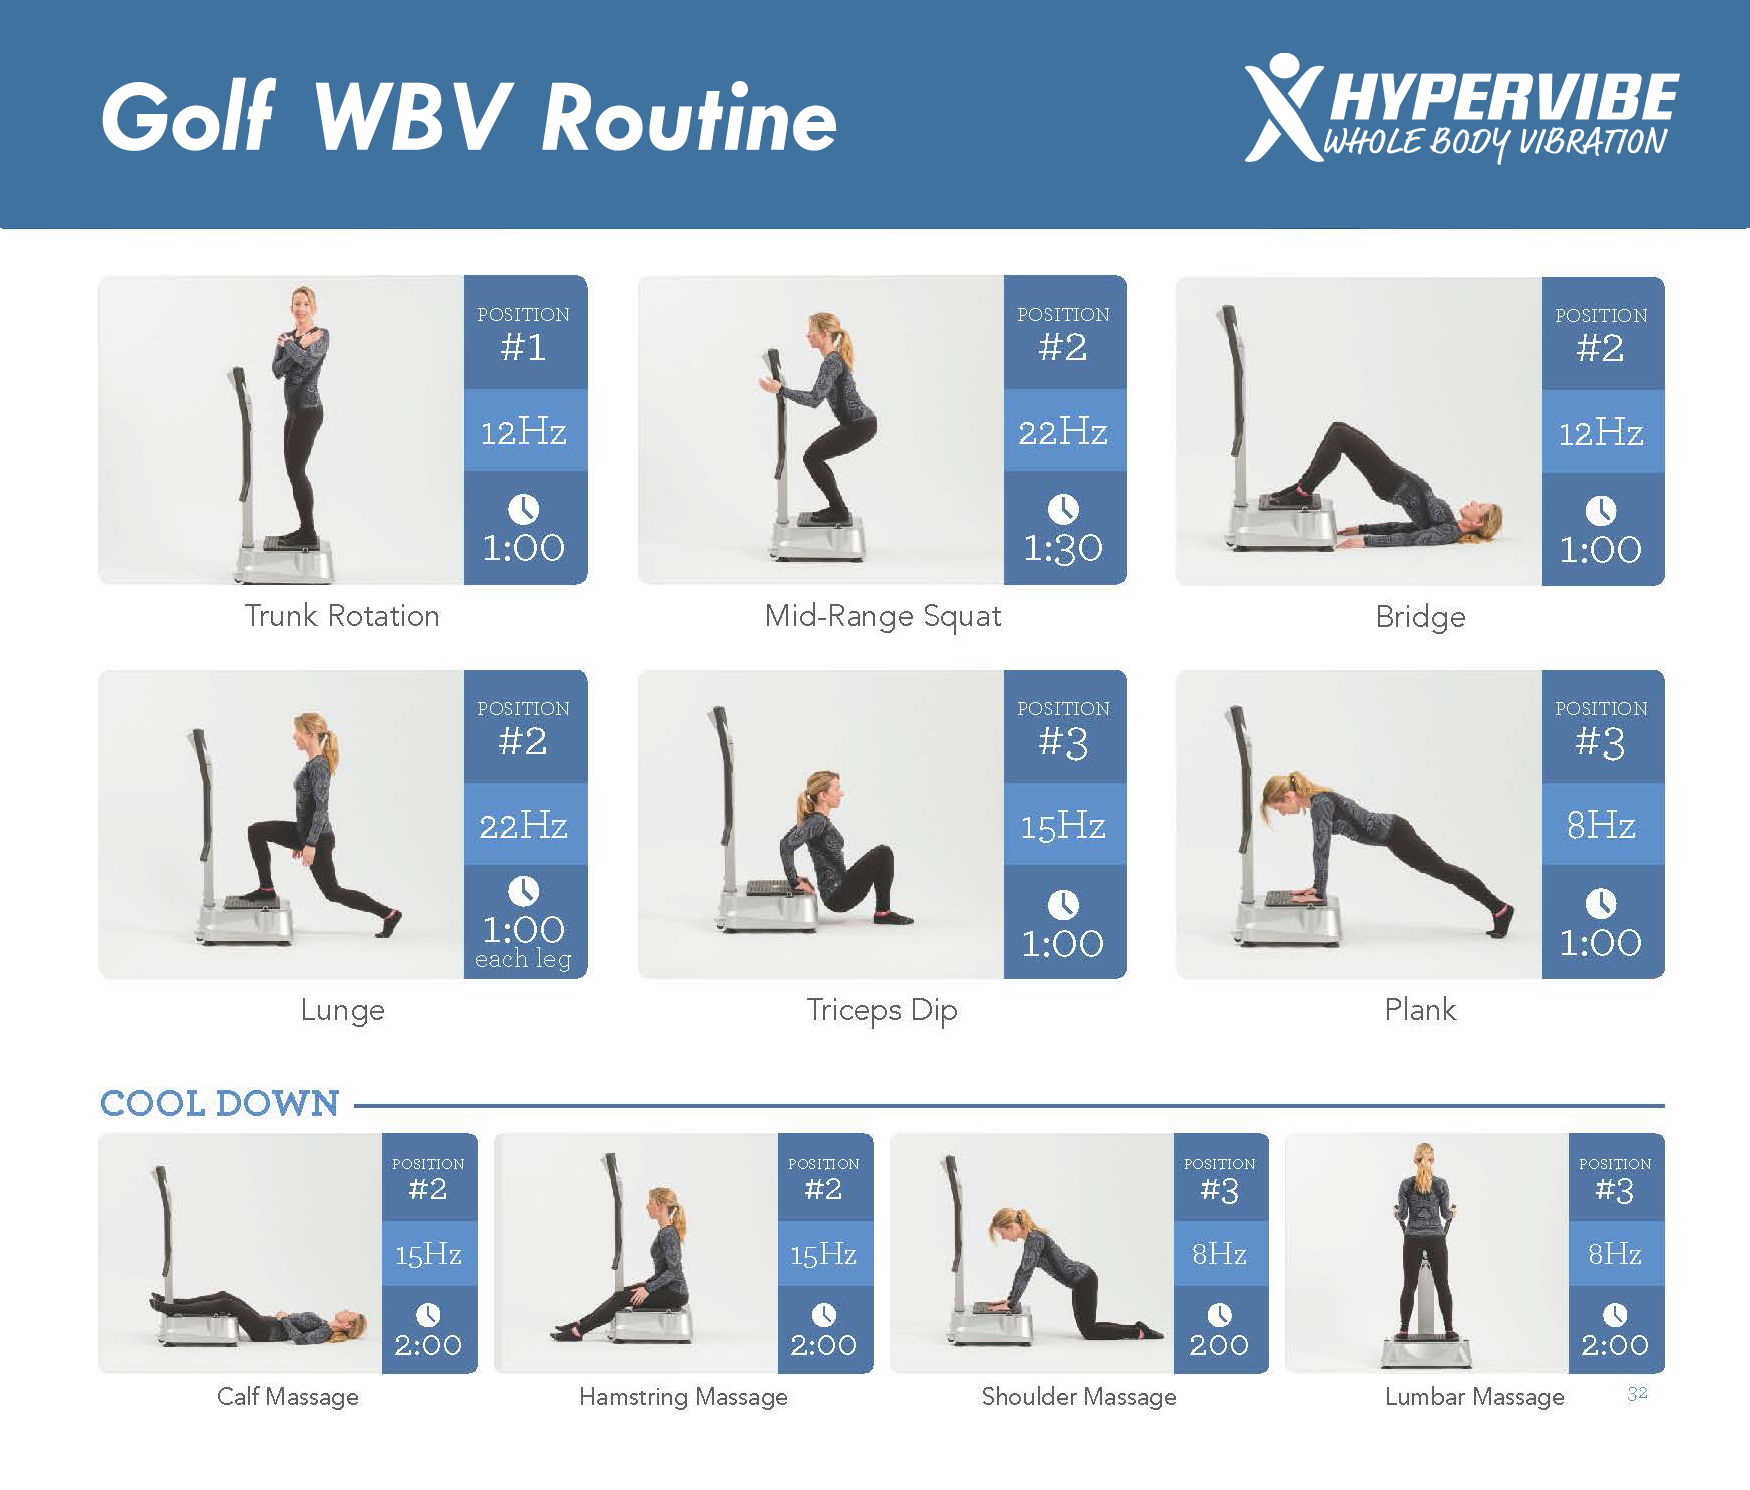 Whole Body Vibration routine for golf players - Hypervibe ...